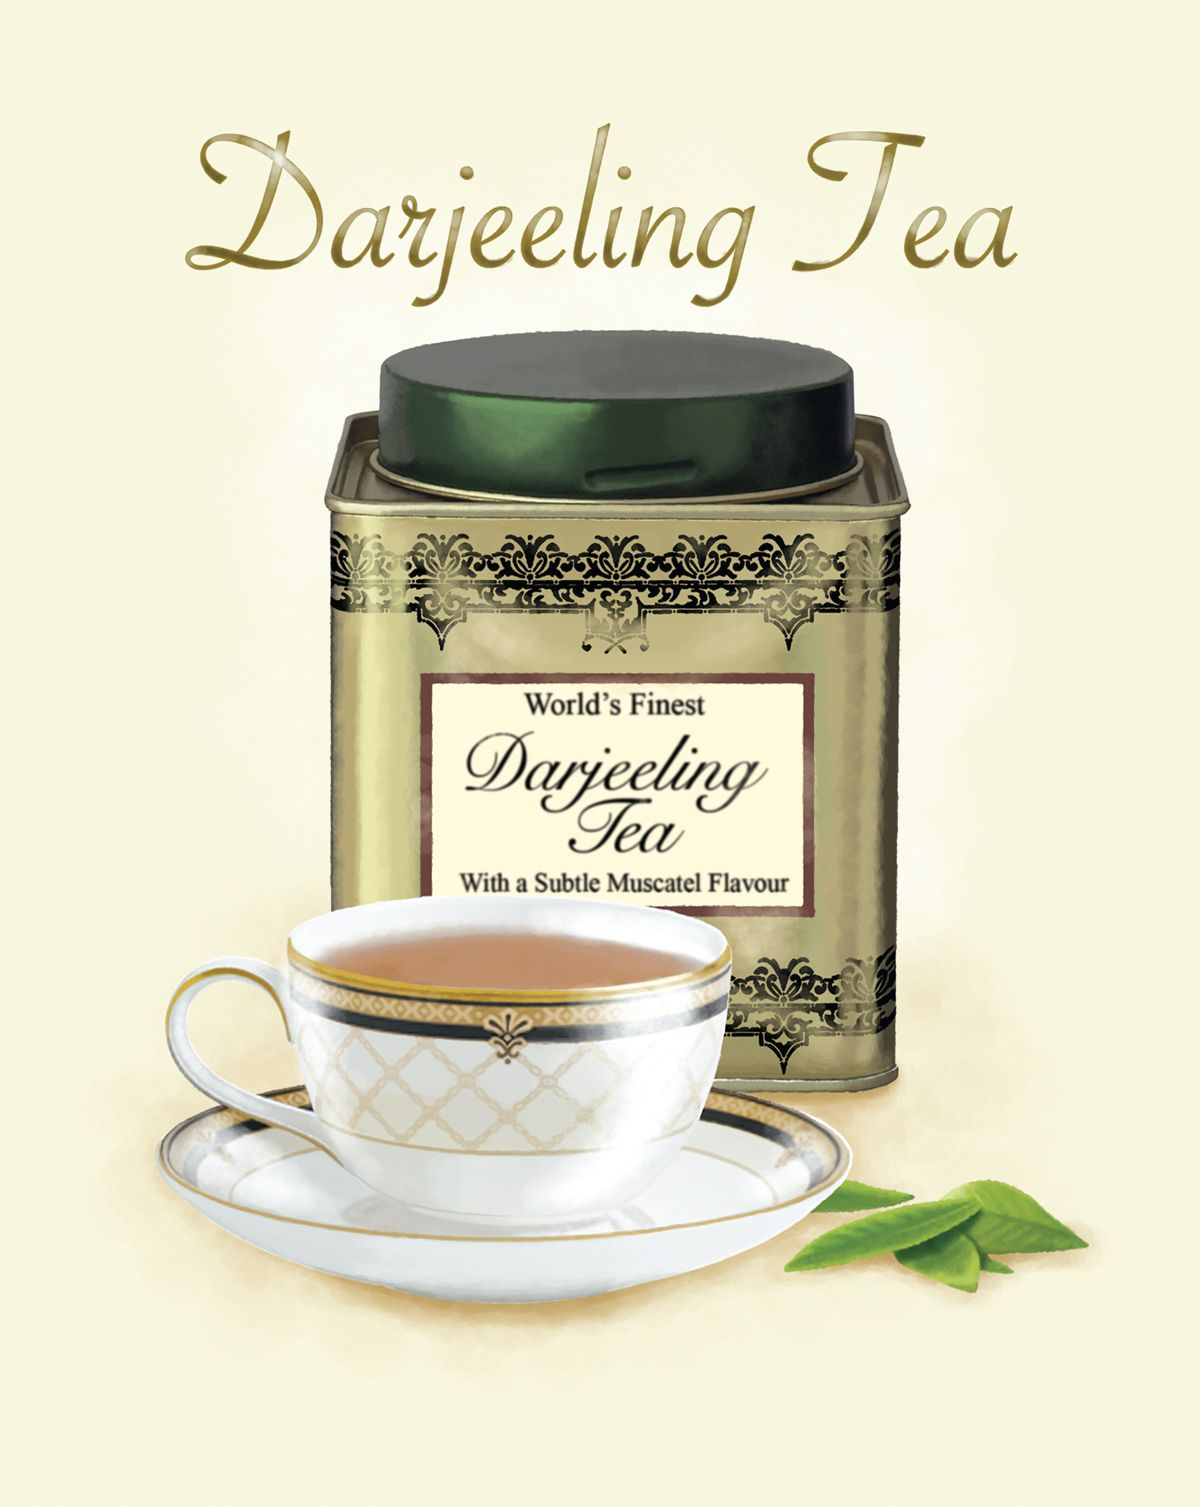 Couchtisch Serviettentechnik Darjeeling Tea By Roy And Jane Evans Tea Lovers Pinterest